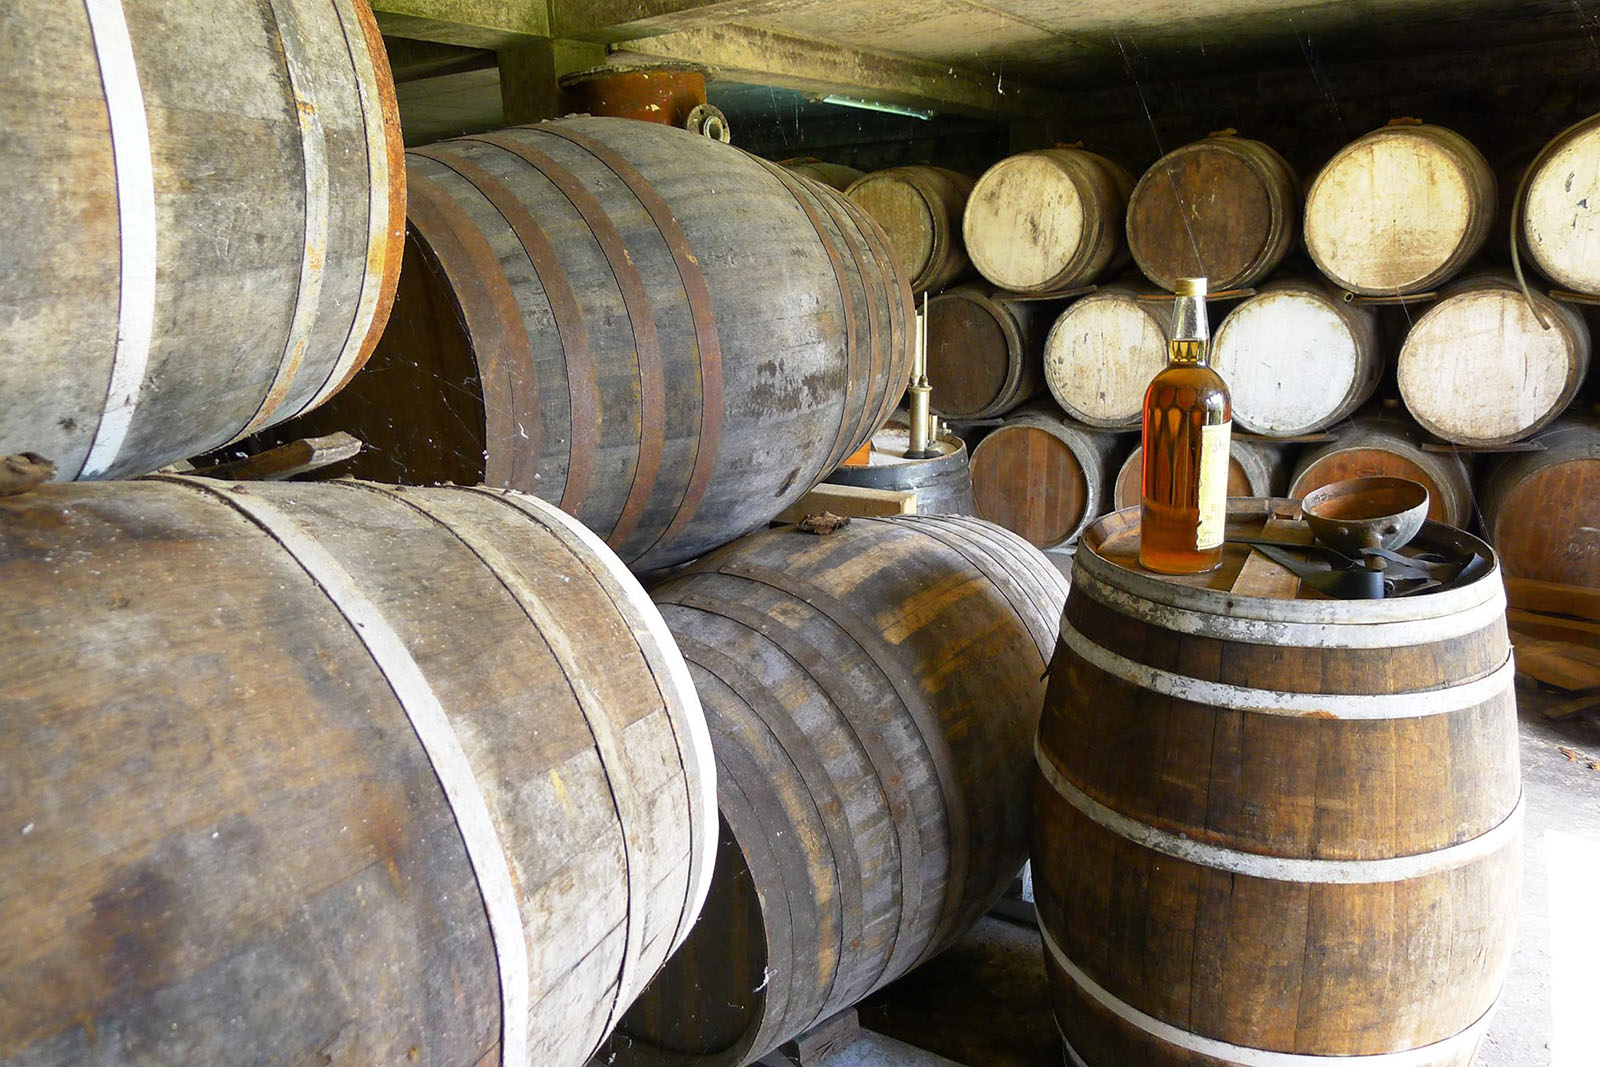 Casks of rum at Le Domaine de Séverin rum distillery